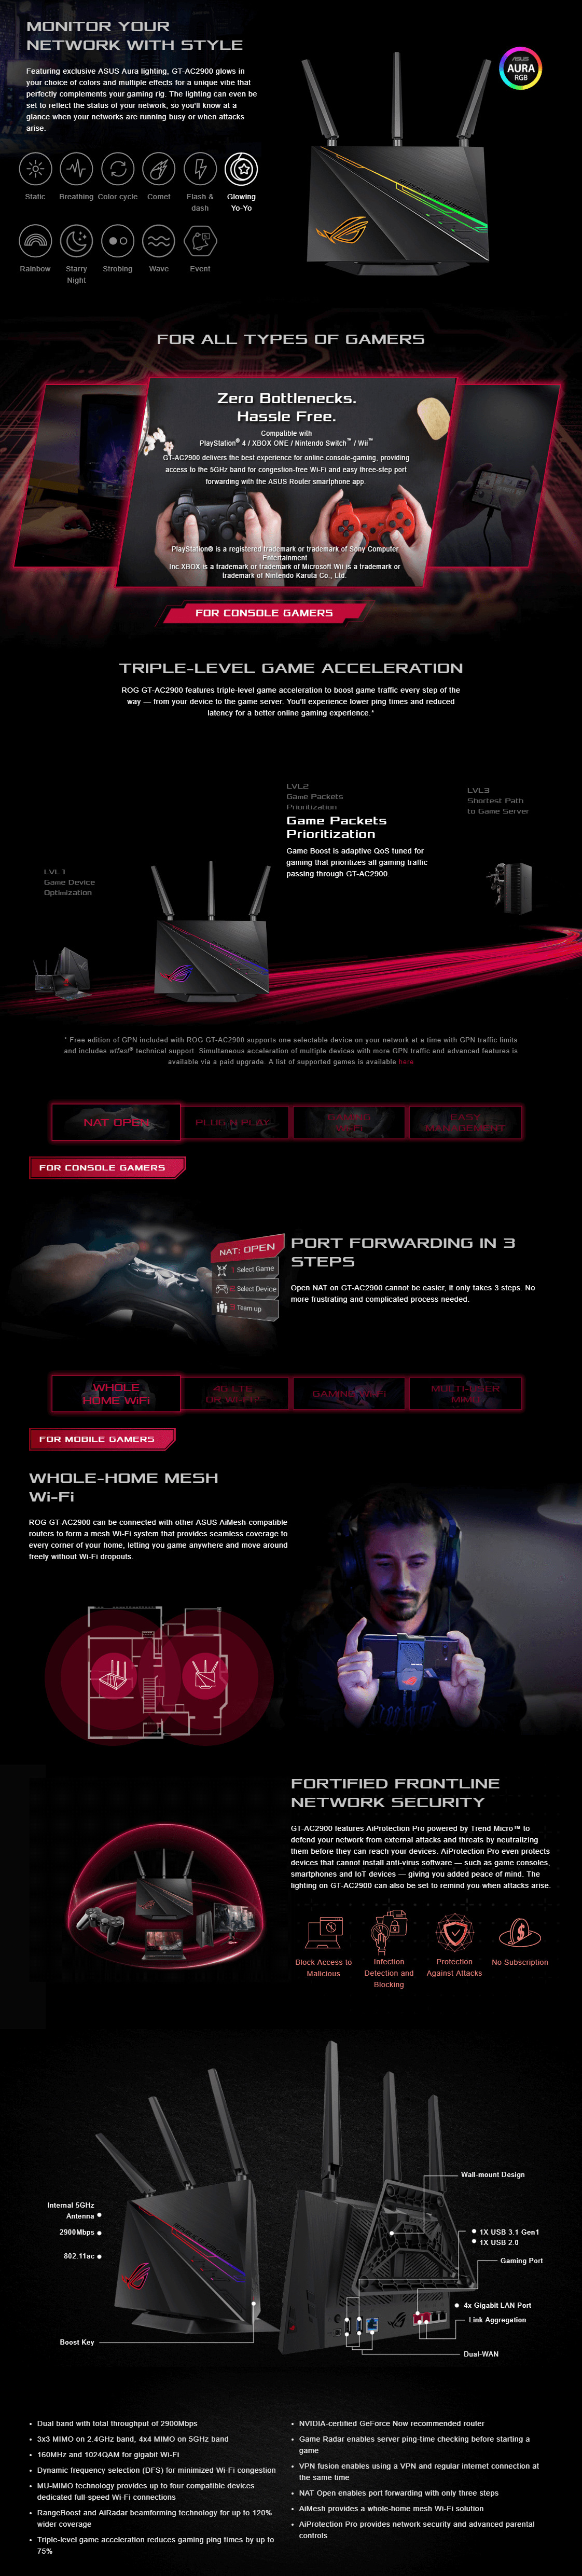 A large marketing image providing additional information about the product ASUS ROG Rapture GT-AC2900 802.11ac Dual-Band AiMesh Wireless-AC2900 Gigabit Router - Additional alt info not provided